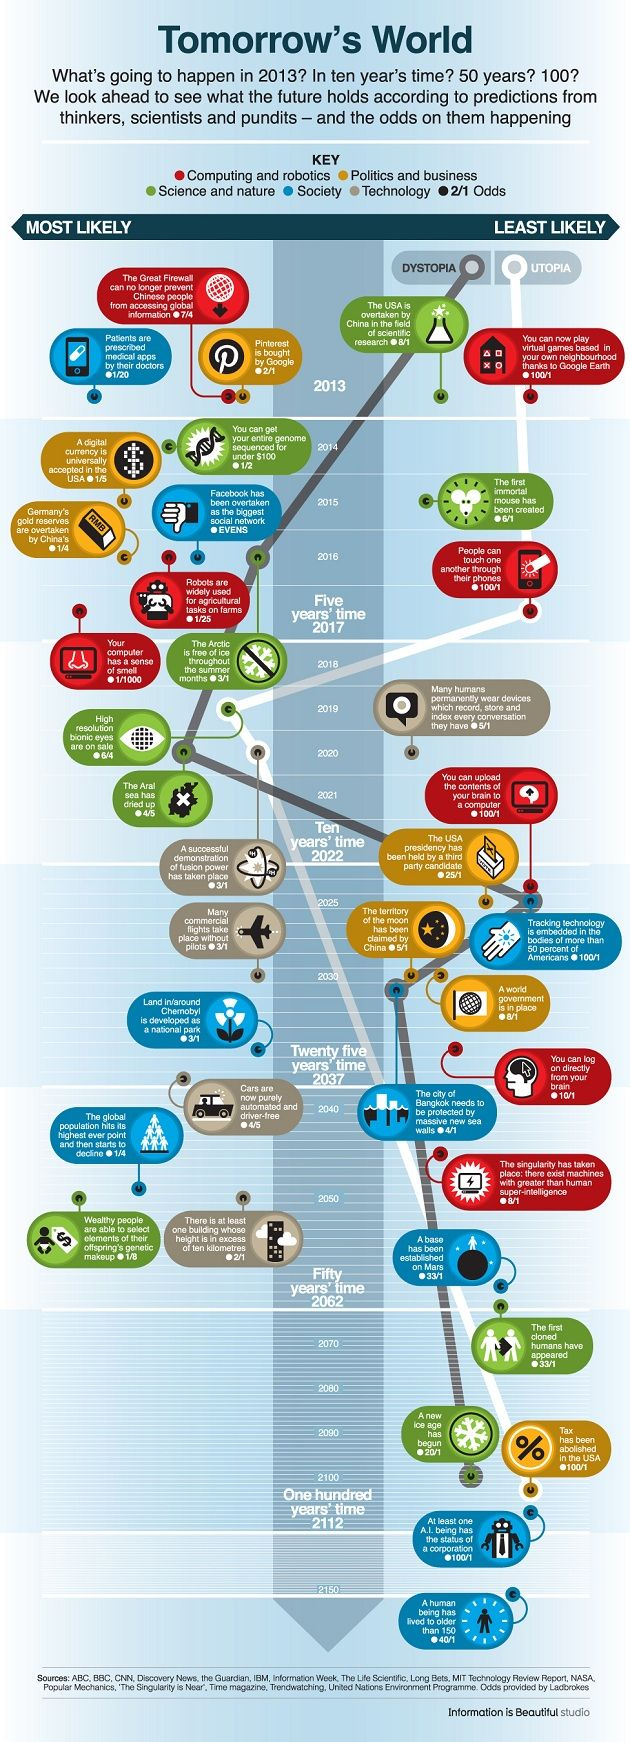 Predicting the Future of Tech  from 372764-infographic-the-future-of-technology.jpg 630×1,742 pixels